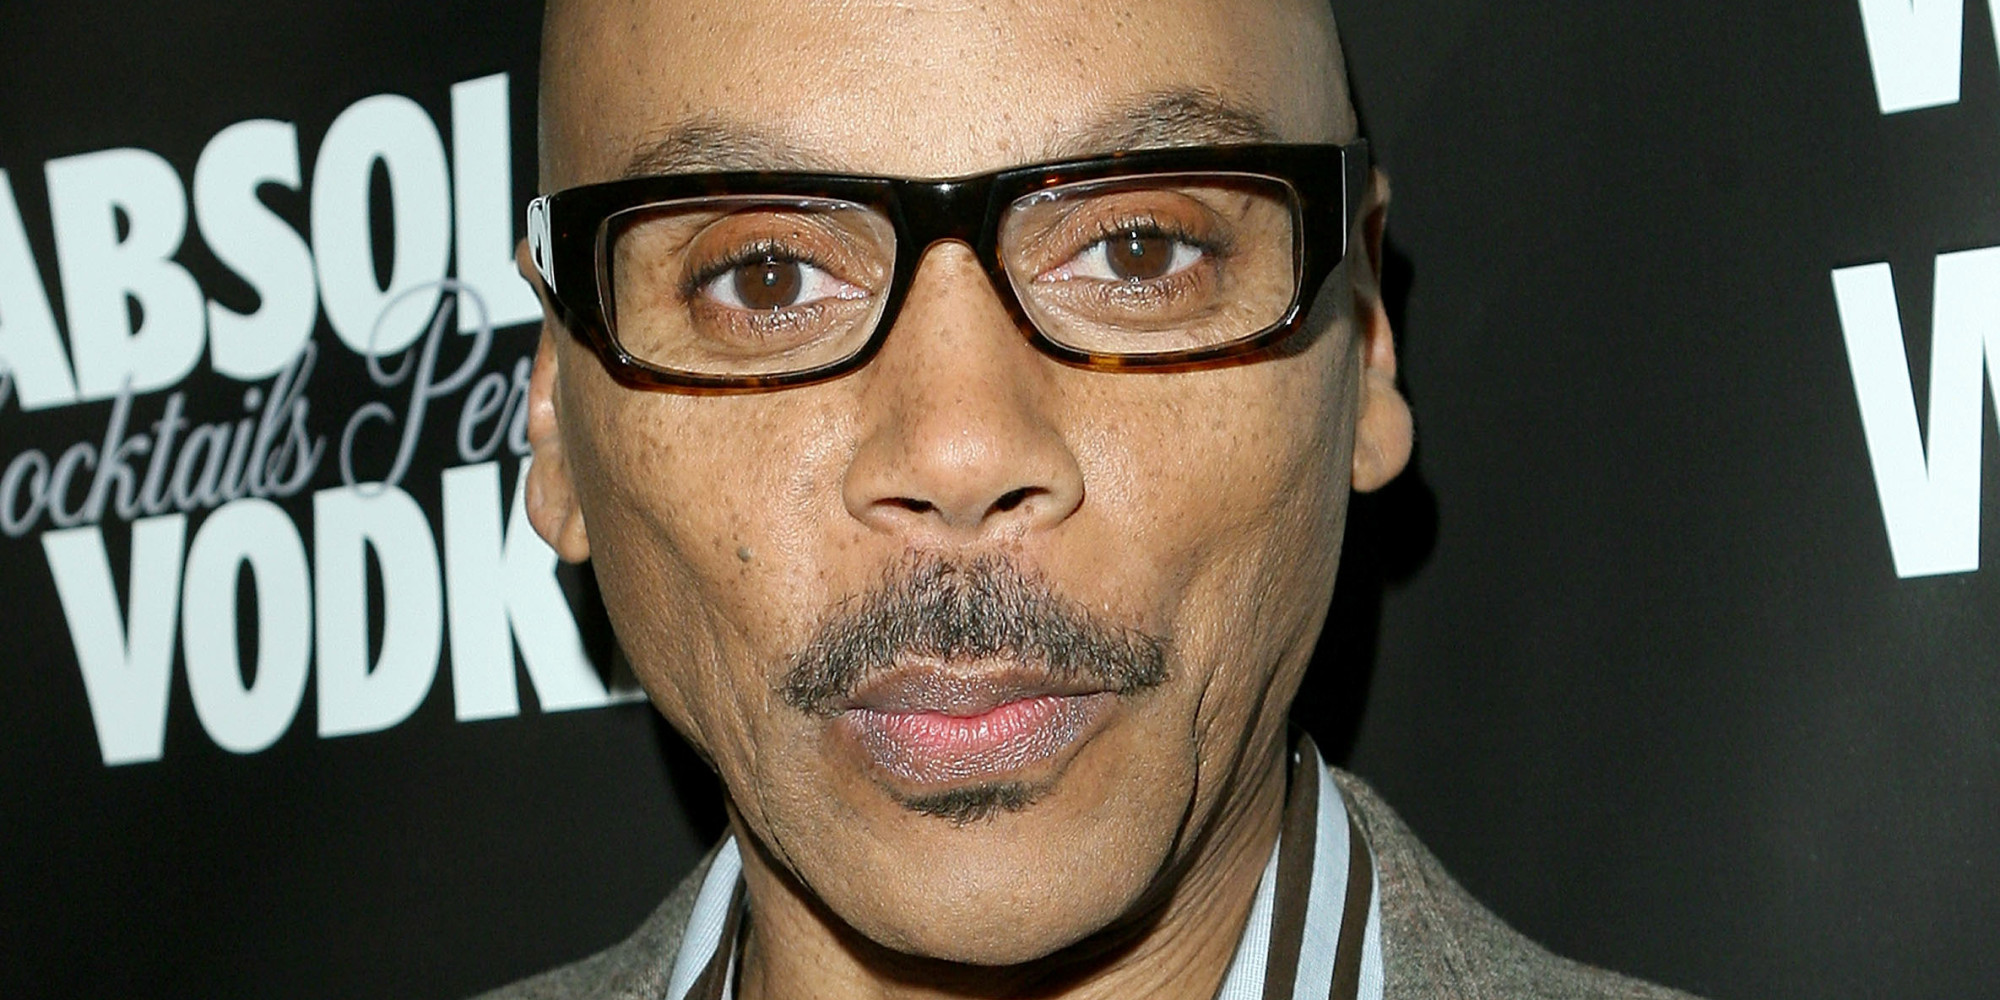 Rupaul to release glamazon cosmetics and fragrance line